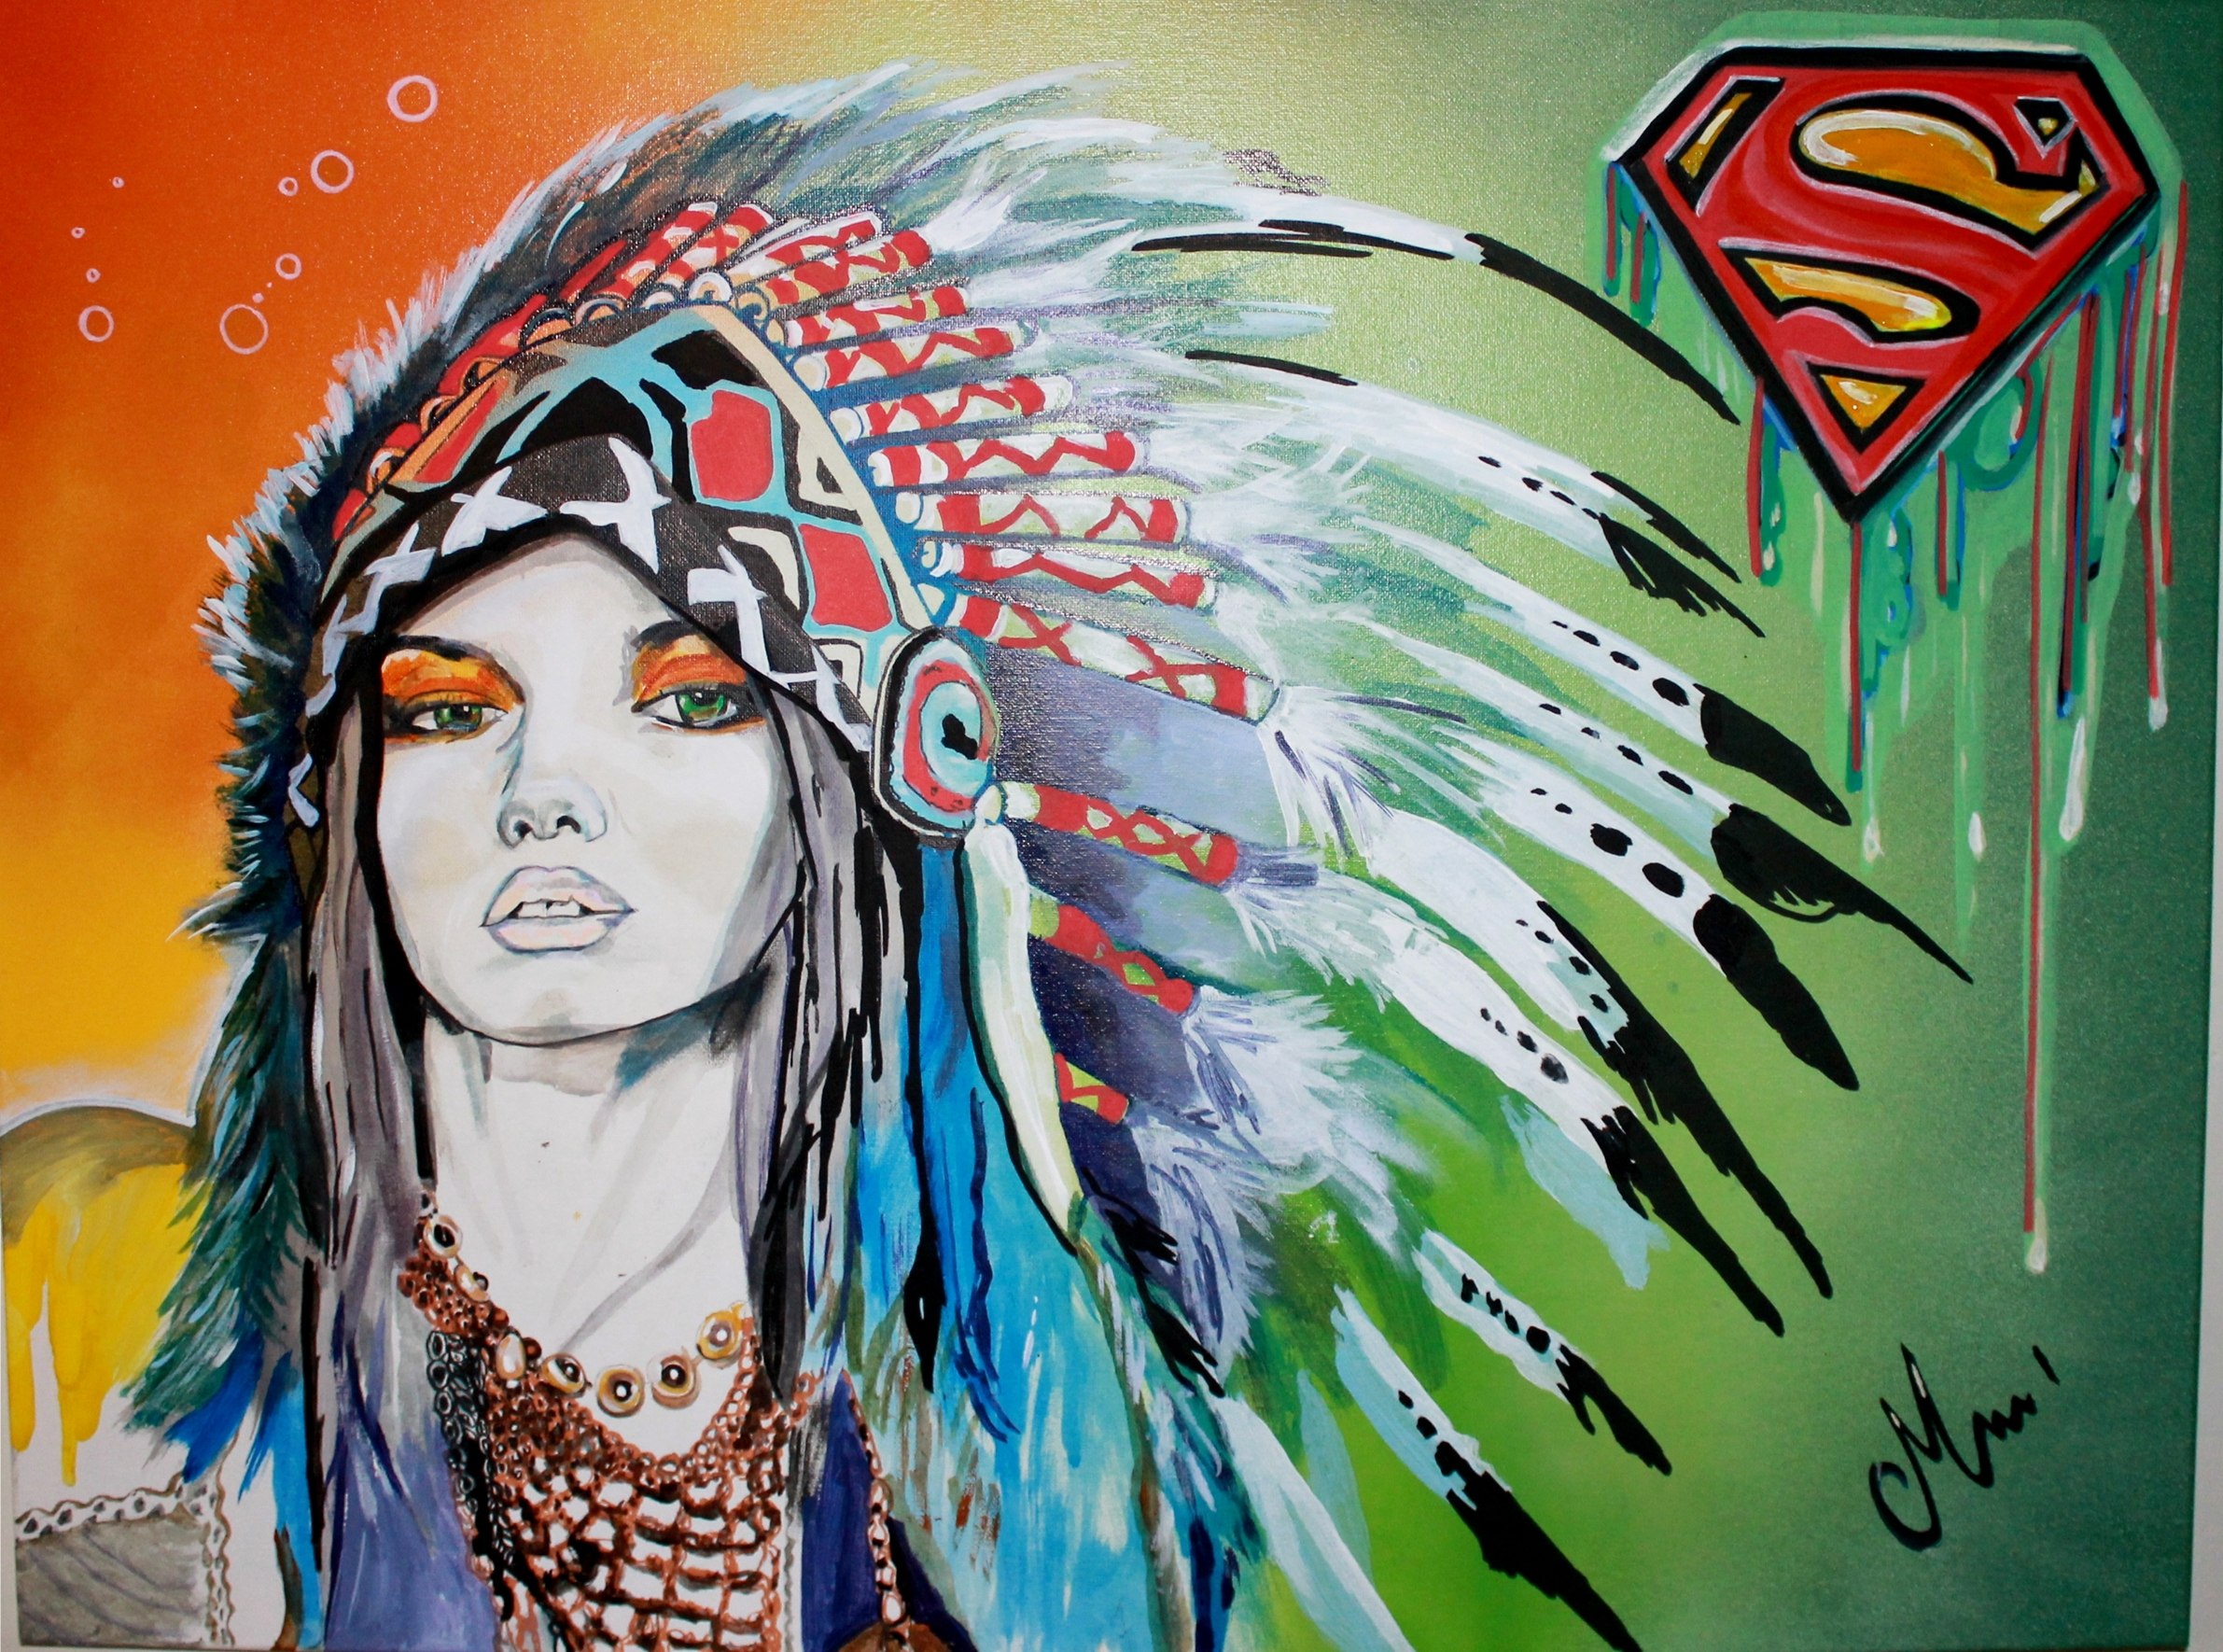 painting art contemporain: warriors we are superman